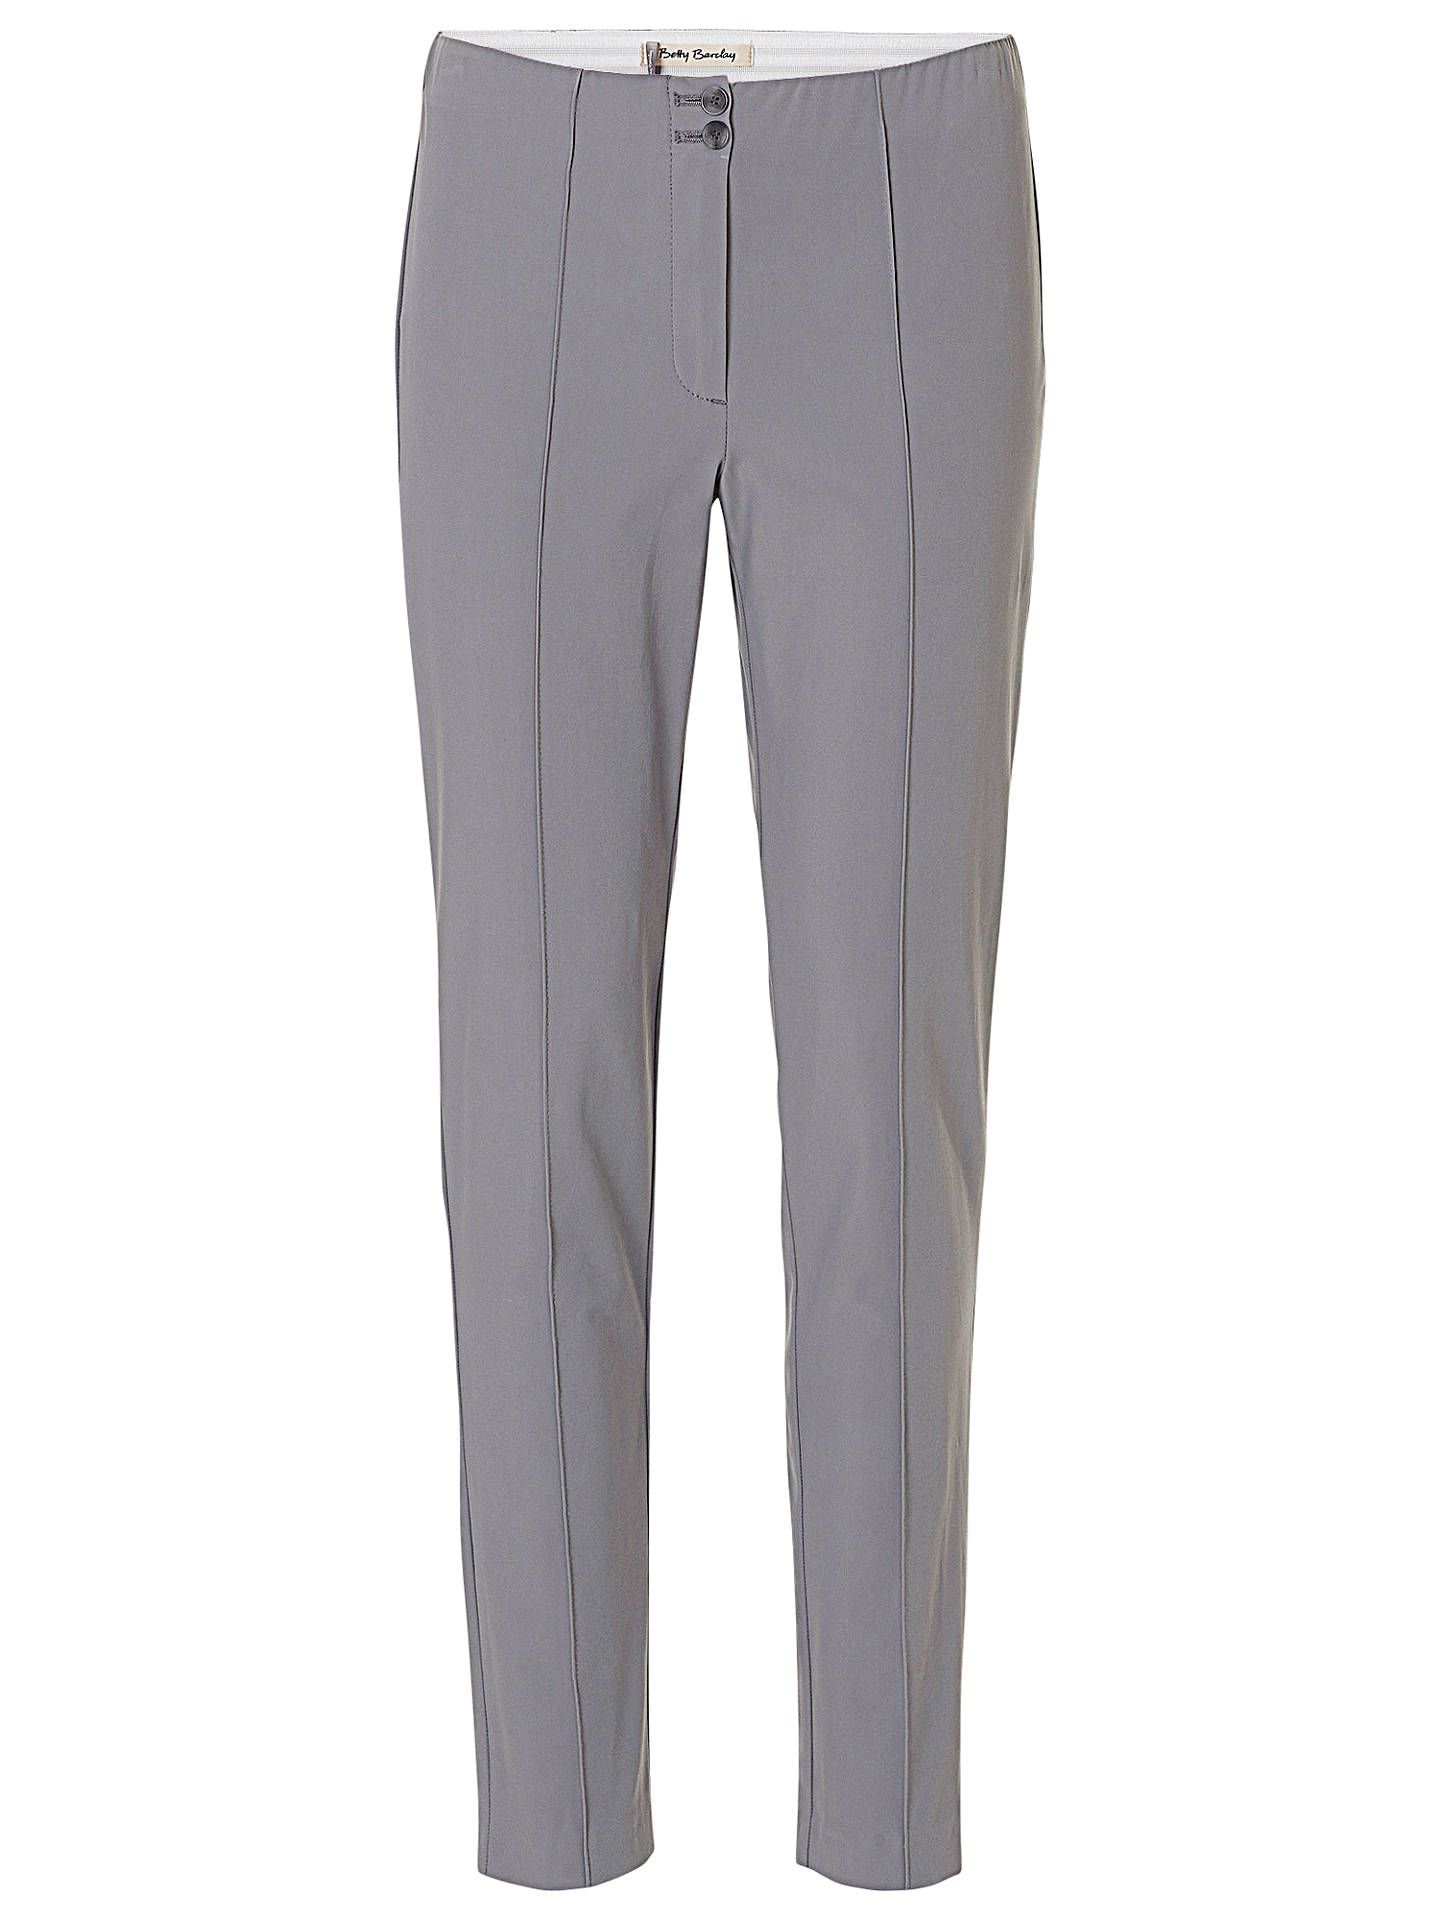 BuyBetty Barclay Slim Fit Stretch Tailored Trousers, Titanium, 10 Online at johnlewis.com